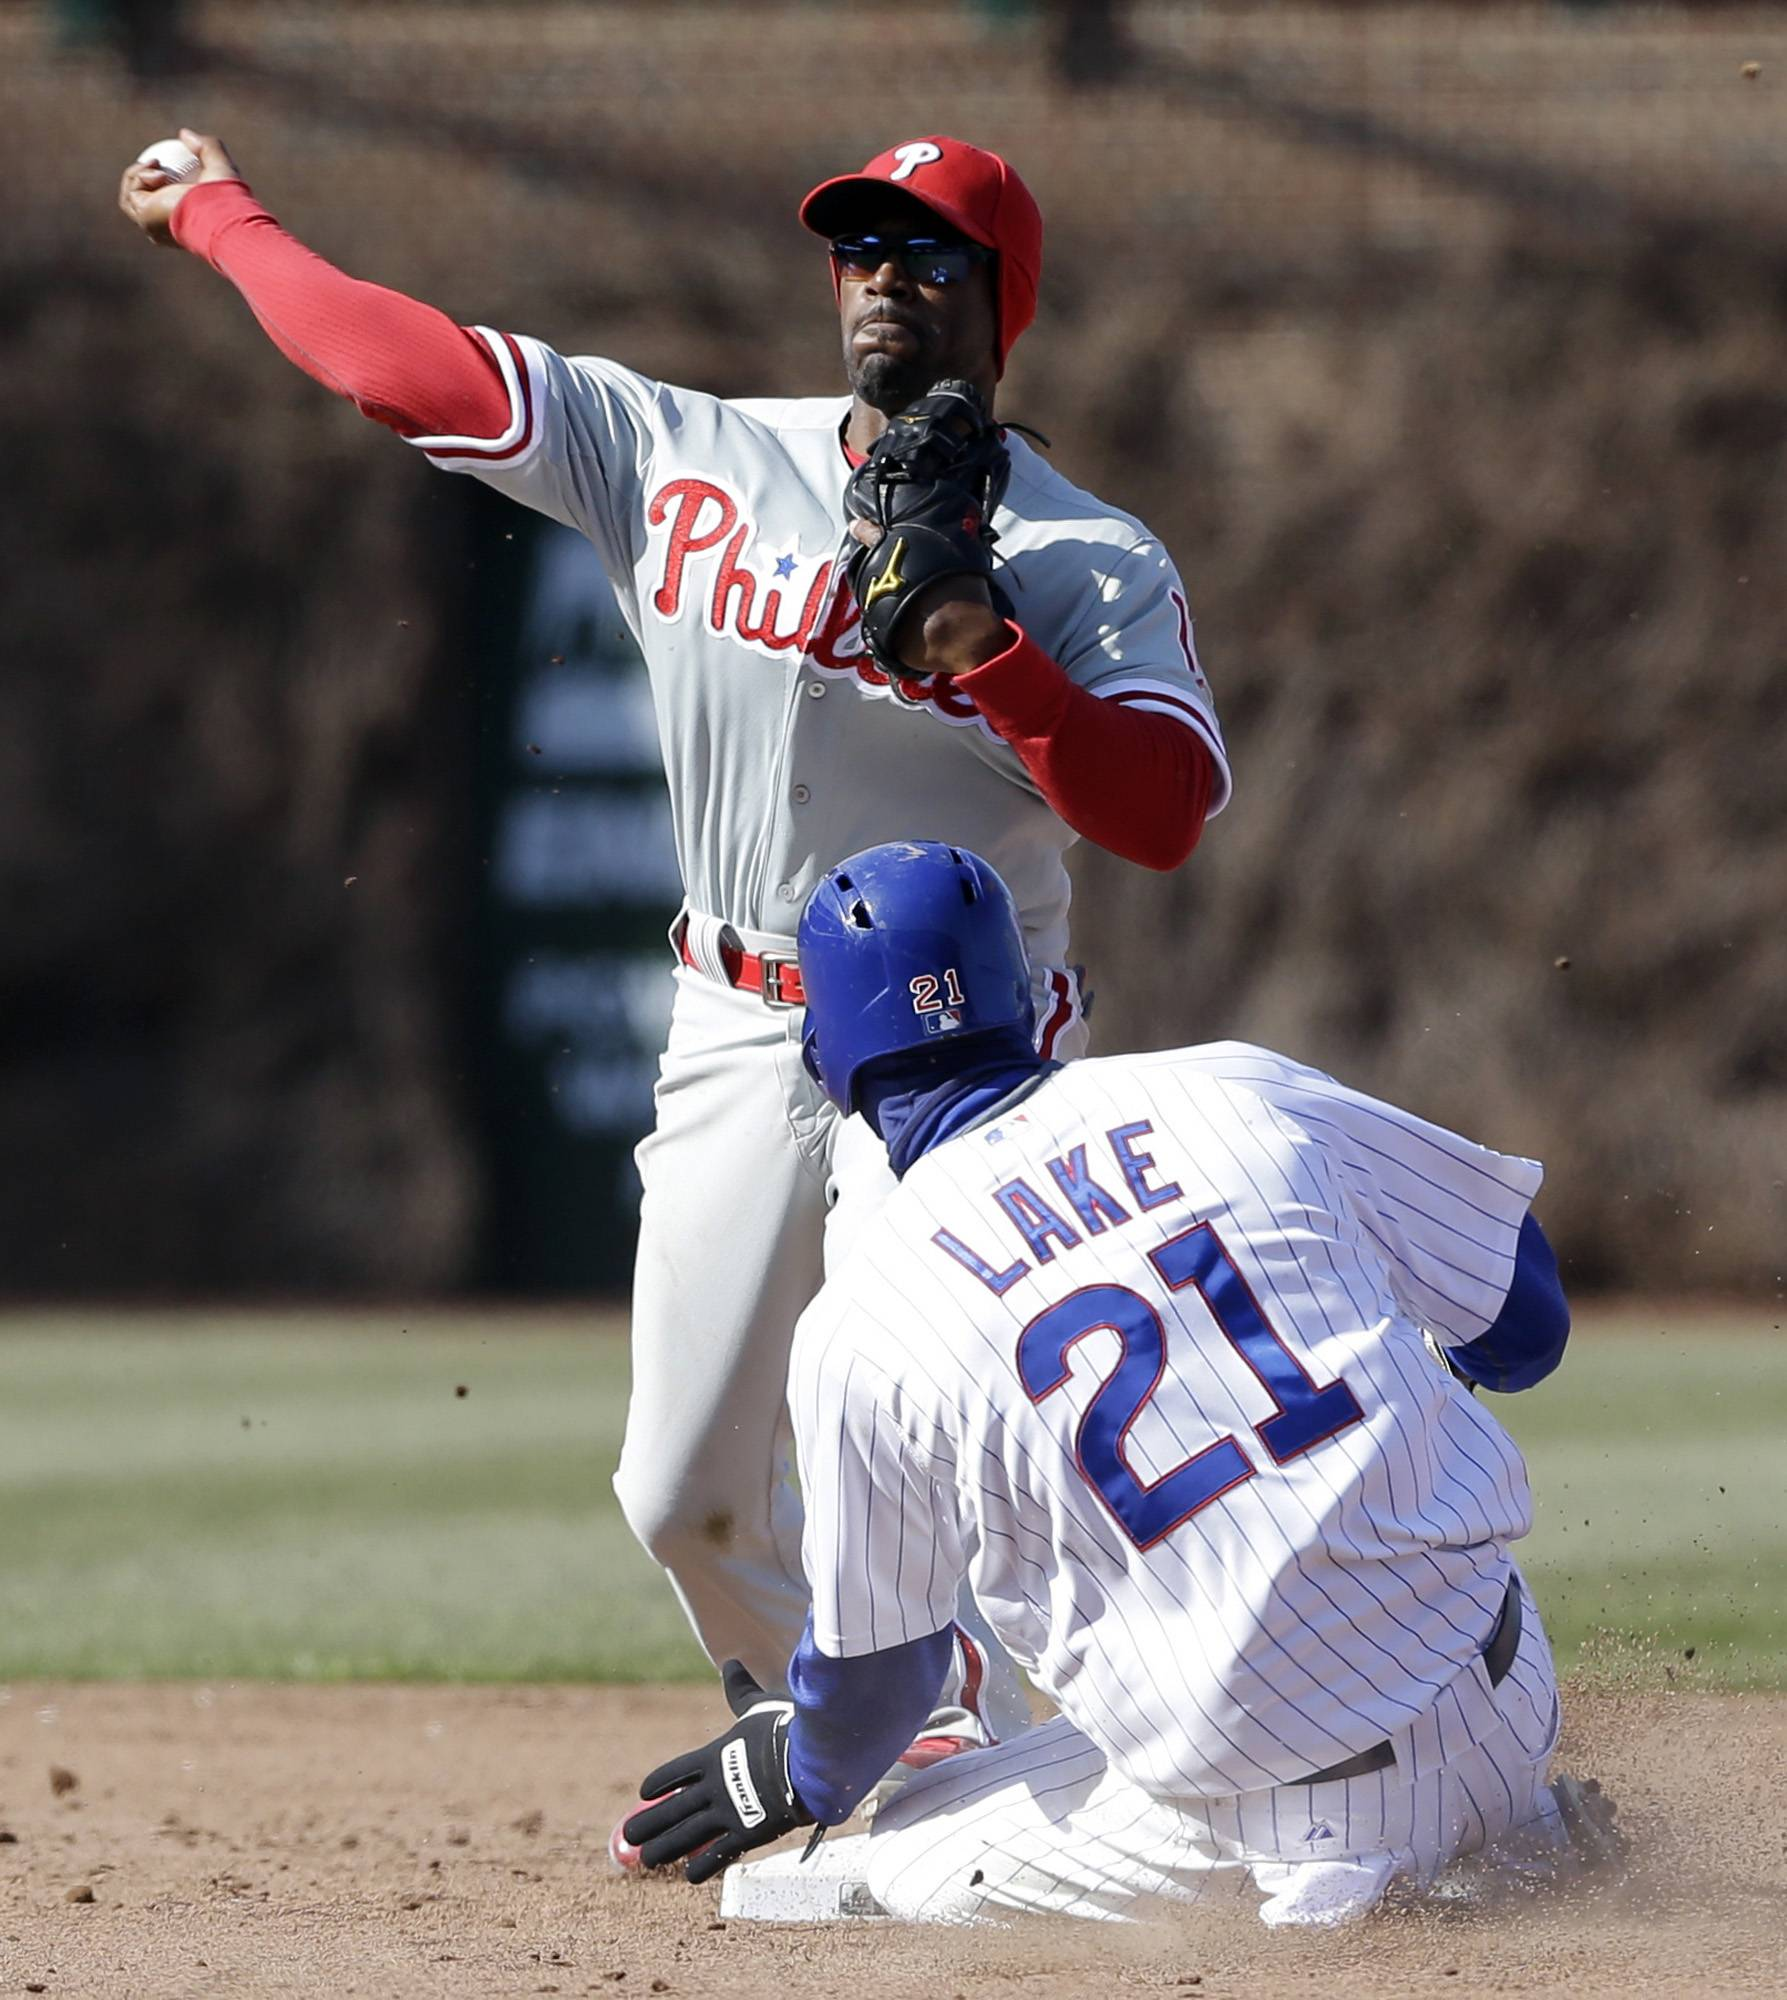 Philadelphia Phillies shortstop Jimmy Rollins, top, throws to first after forcing out Chicago Cubs' Junior Lake during the eighth inning of a baseball game in Chicago, Saturday, April 5, 2014. Chicago Cubs' Mike Olt was safe at first.